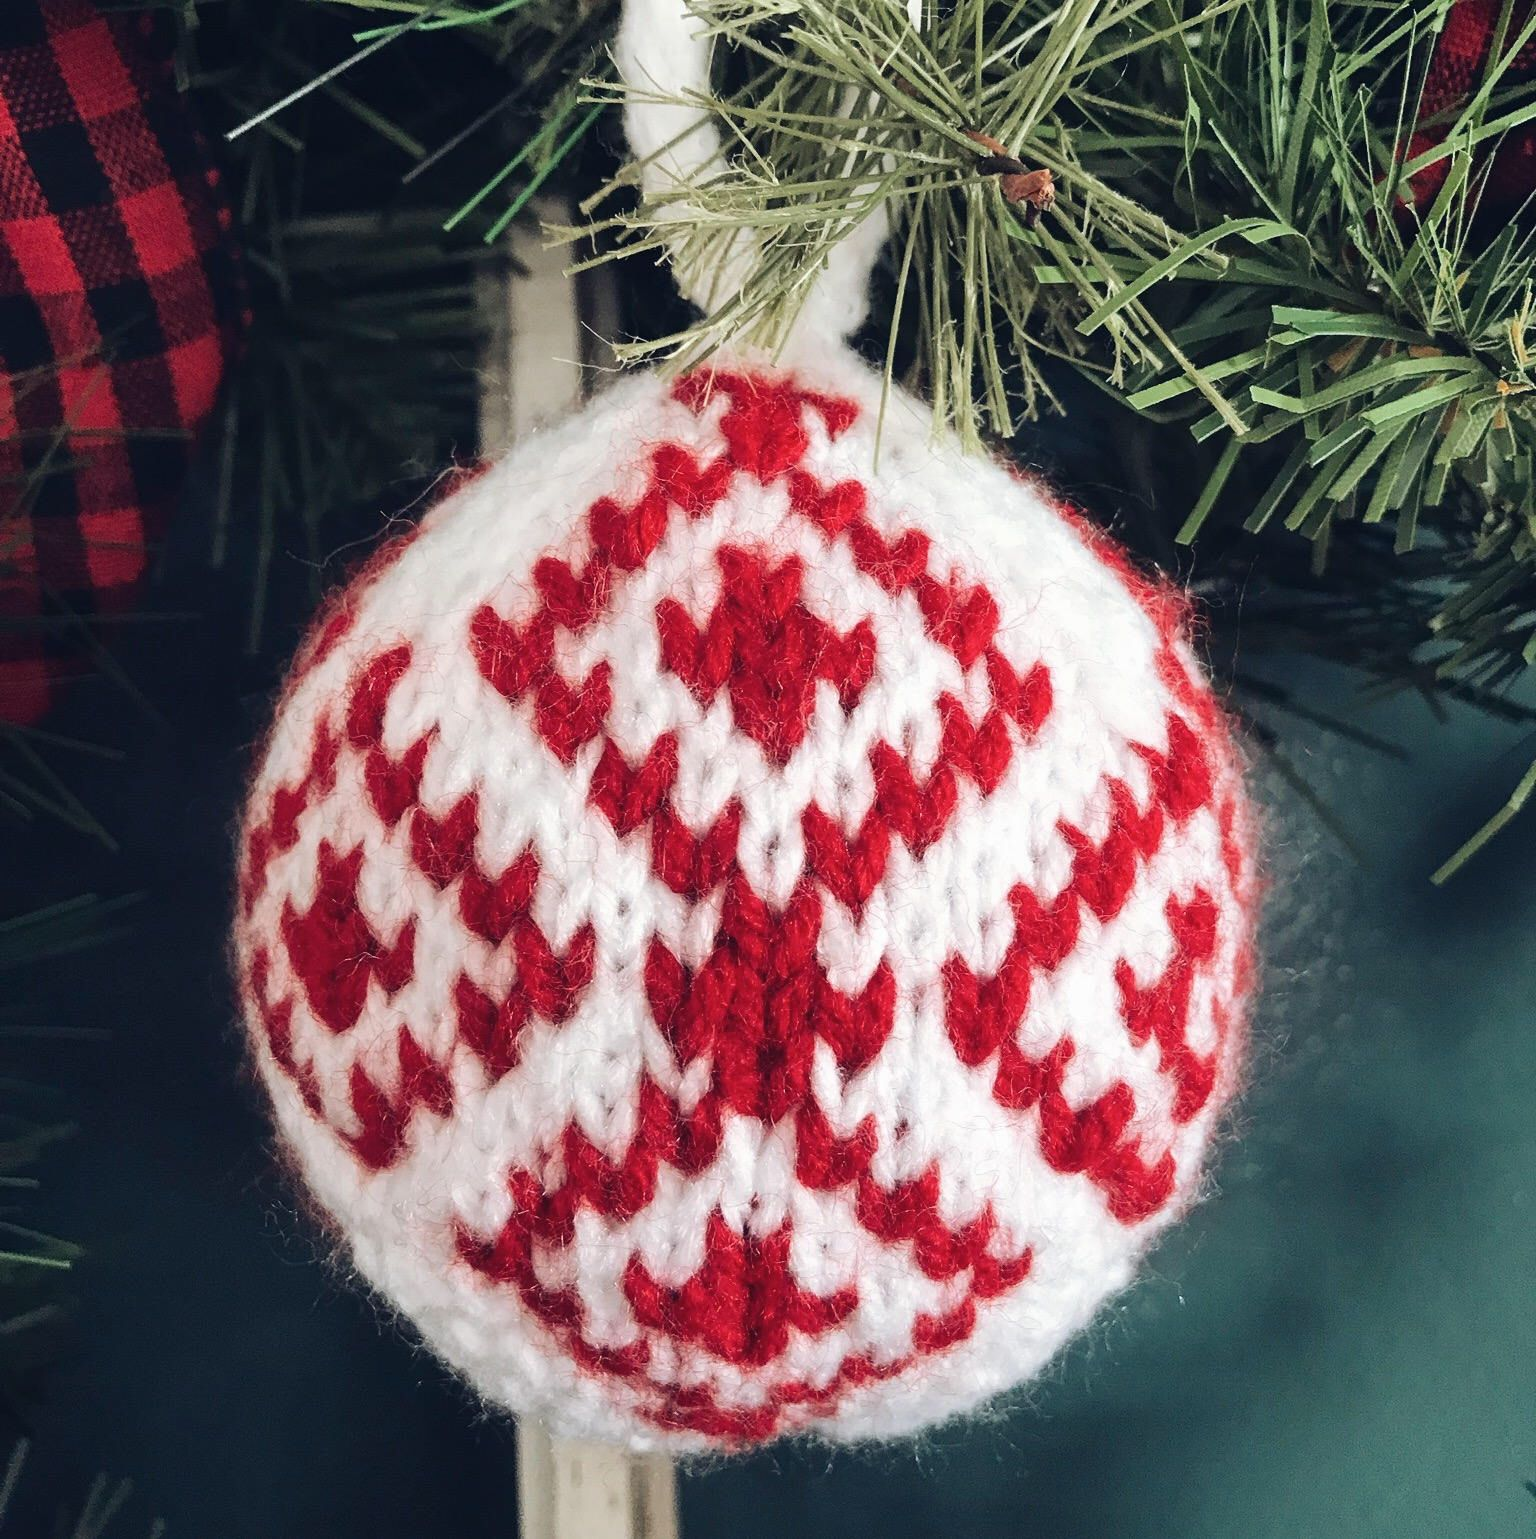 Nordic Knitted Christmas Ornaments - Scandinavian Inspired Round ...